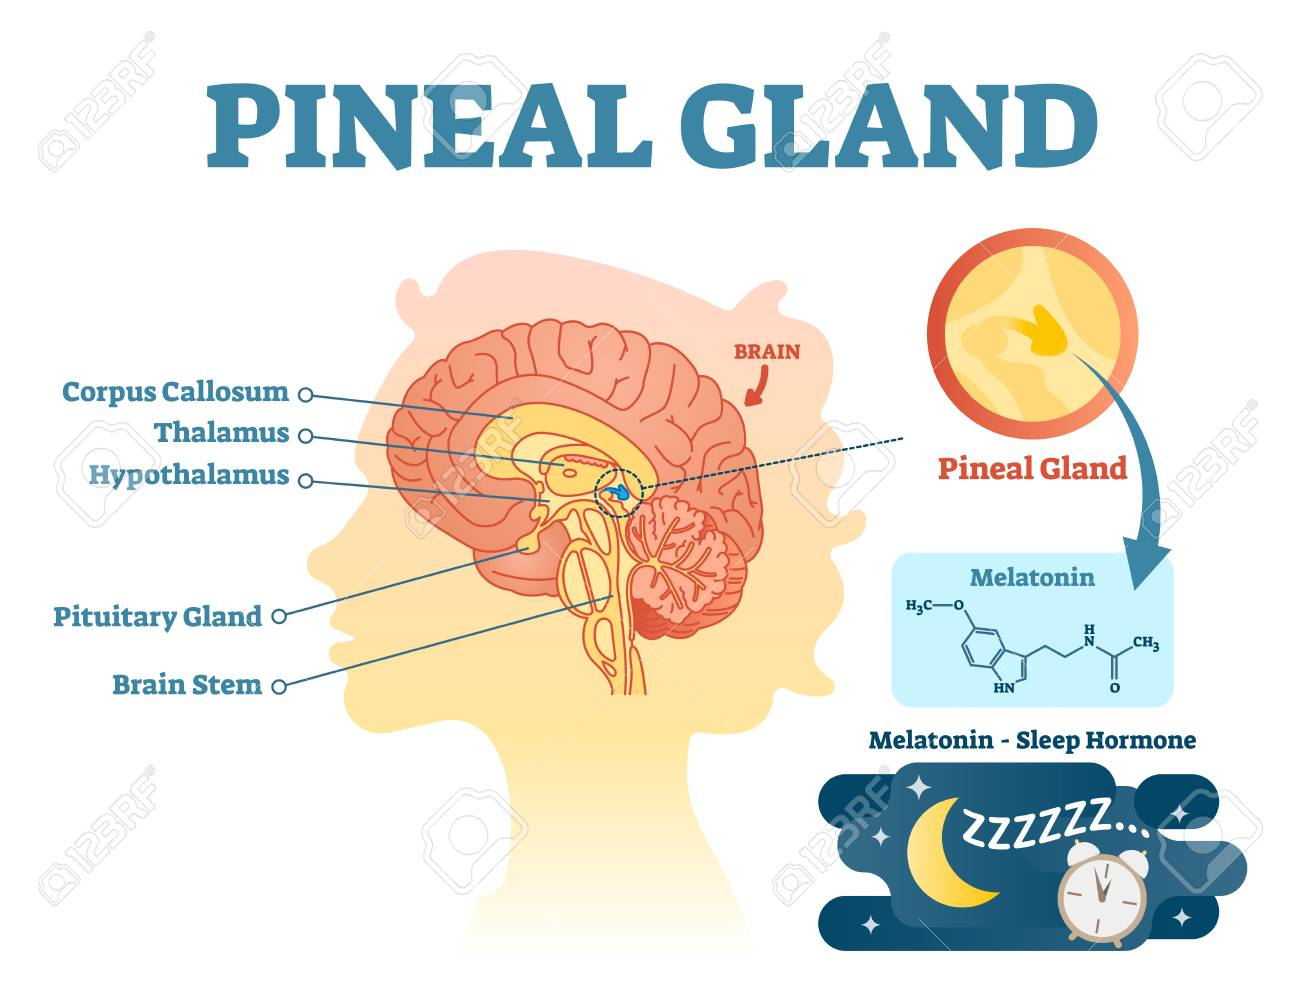 Pineal gland anatomical cross section vector illustration diagram with human brains. Medical information poster. - 102232803